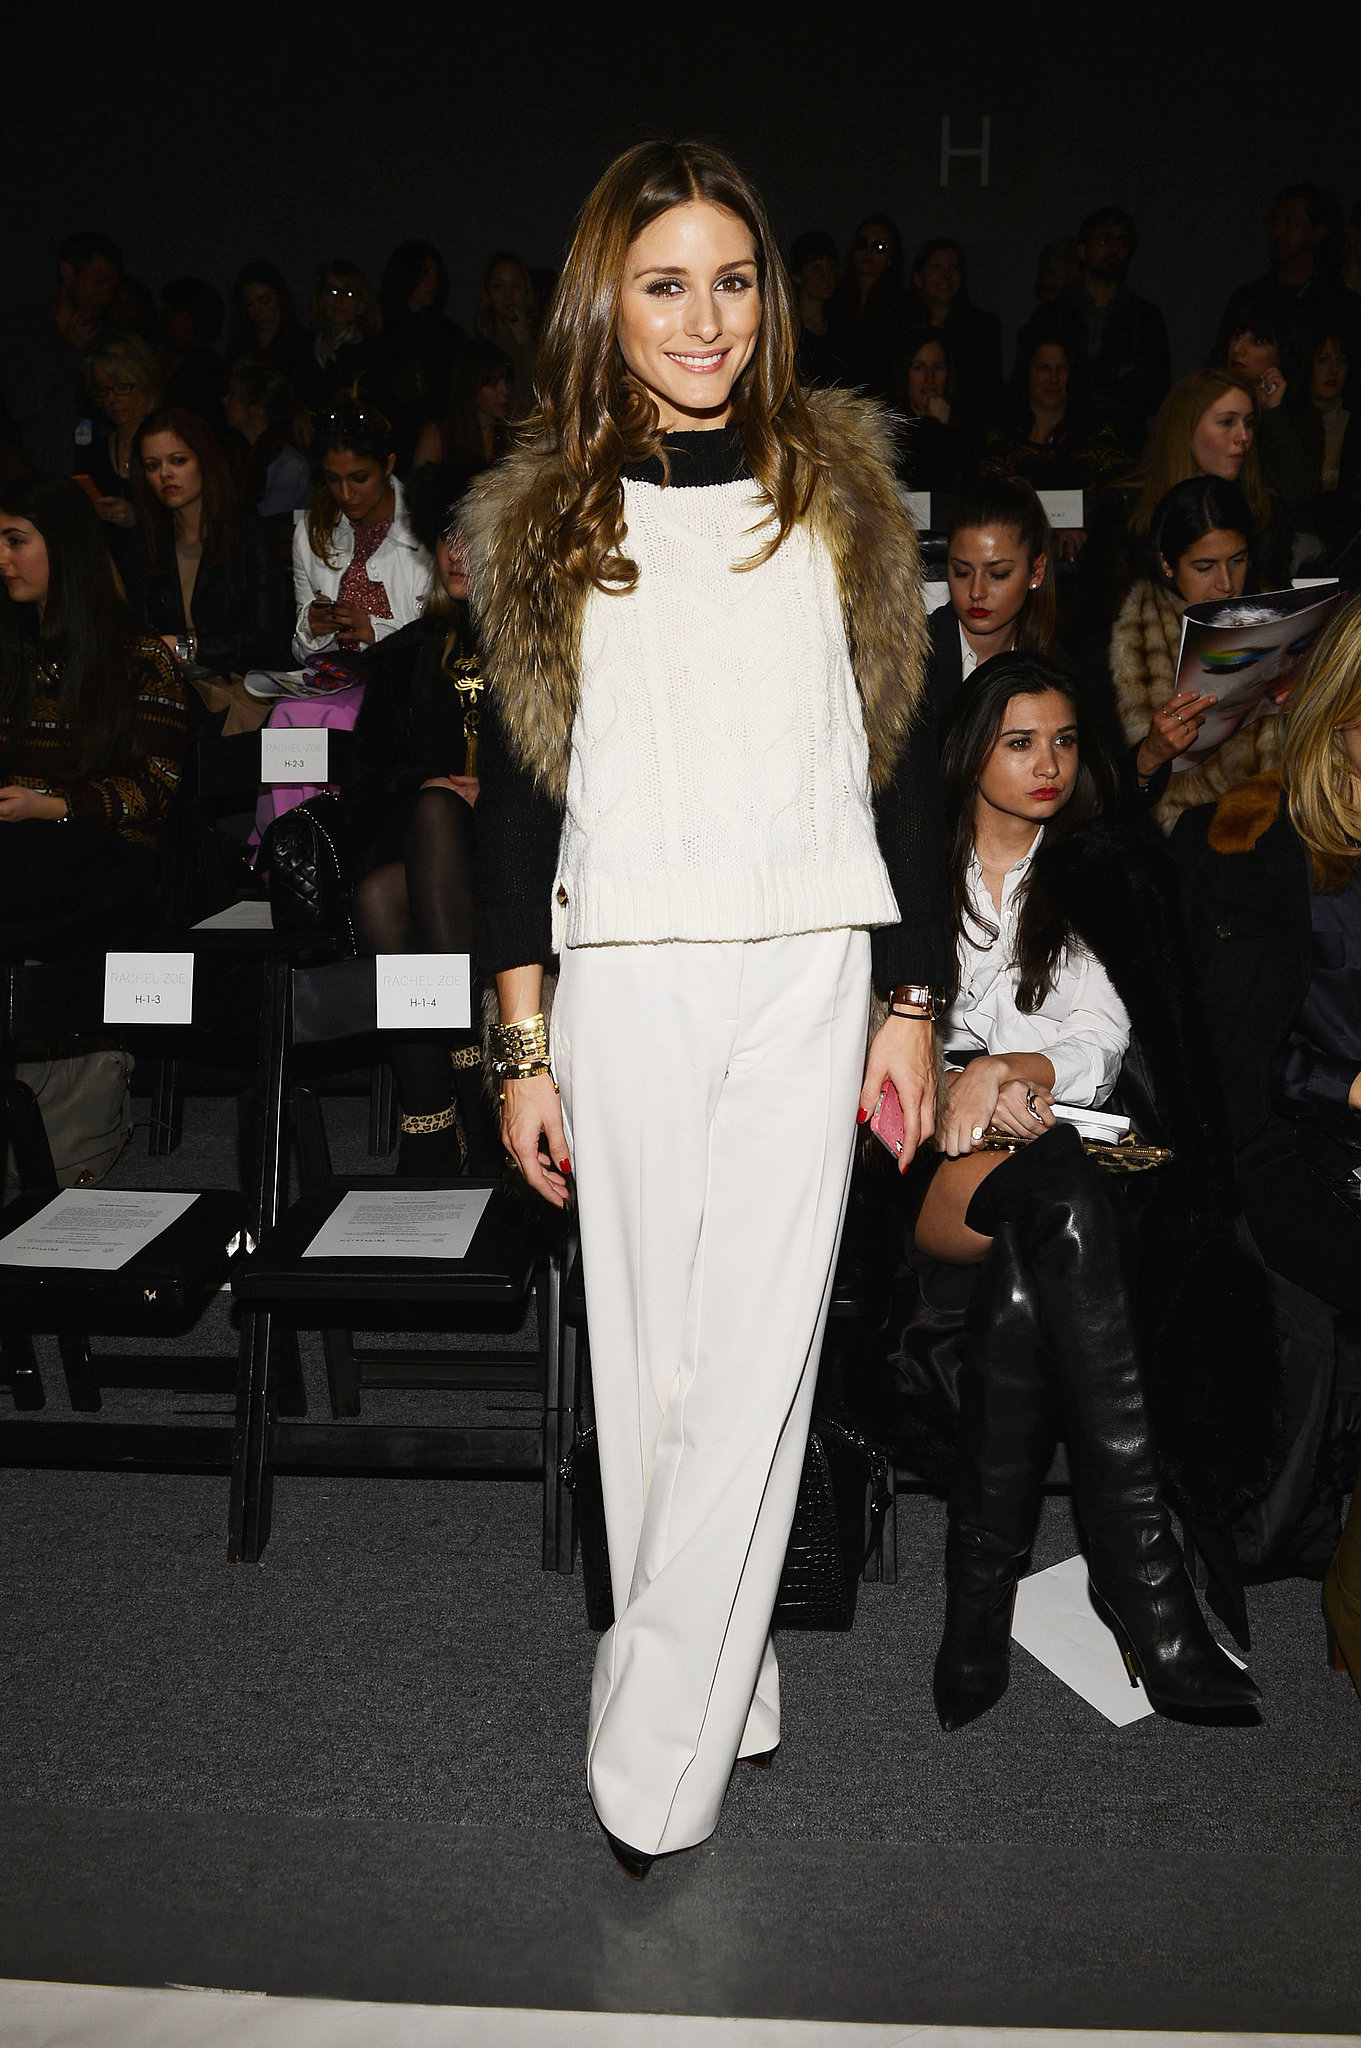 We love how Olivia's furry vest lent a touch of texture to her colorblocked top and slick white trousers at the Rachel Zoe show in NYC.